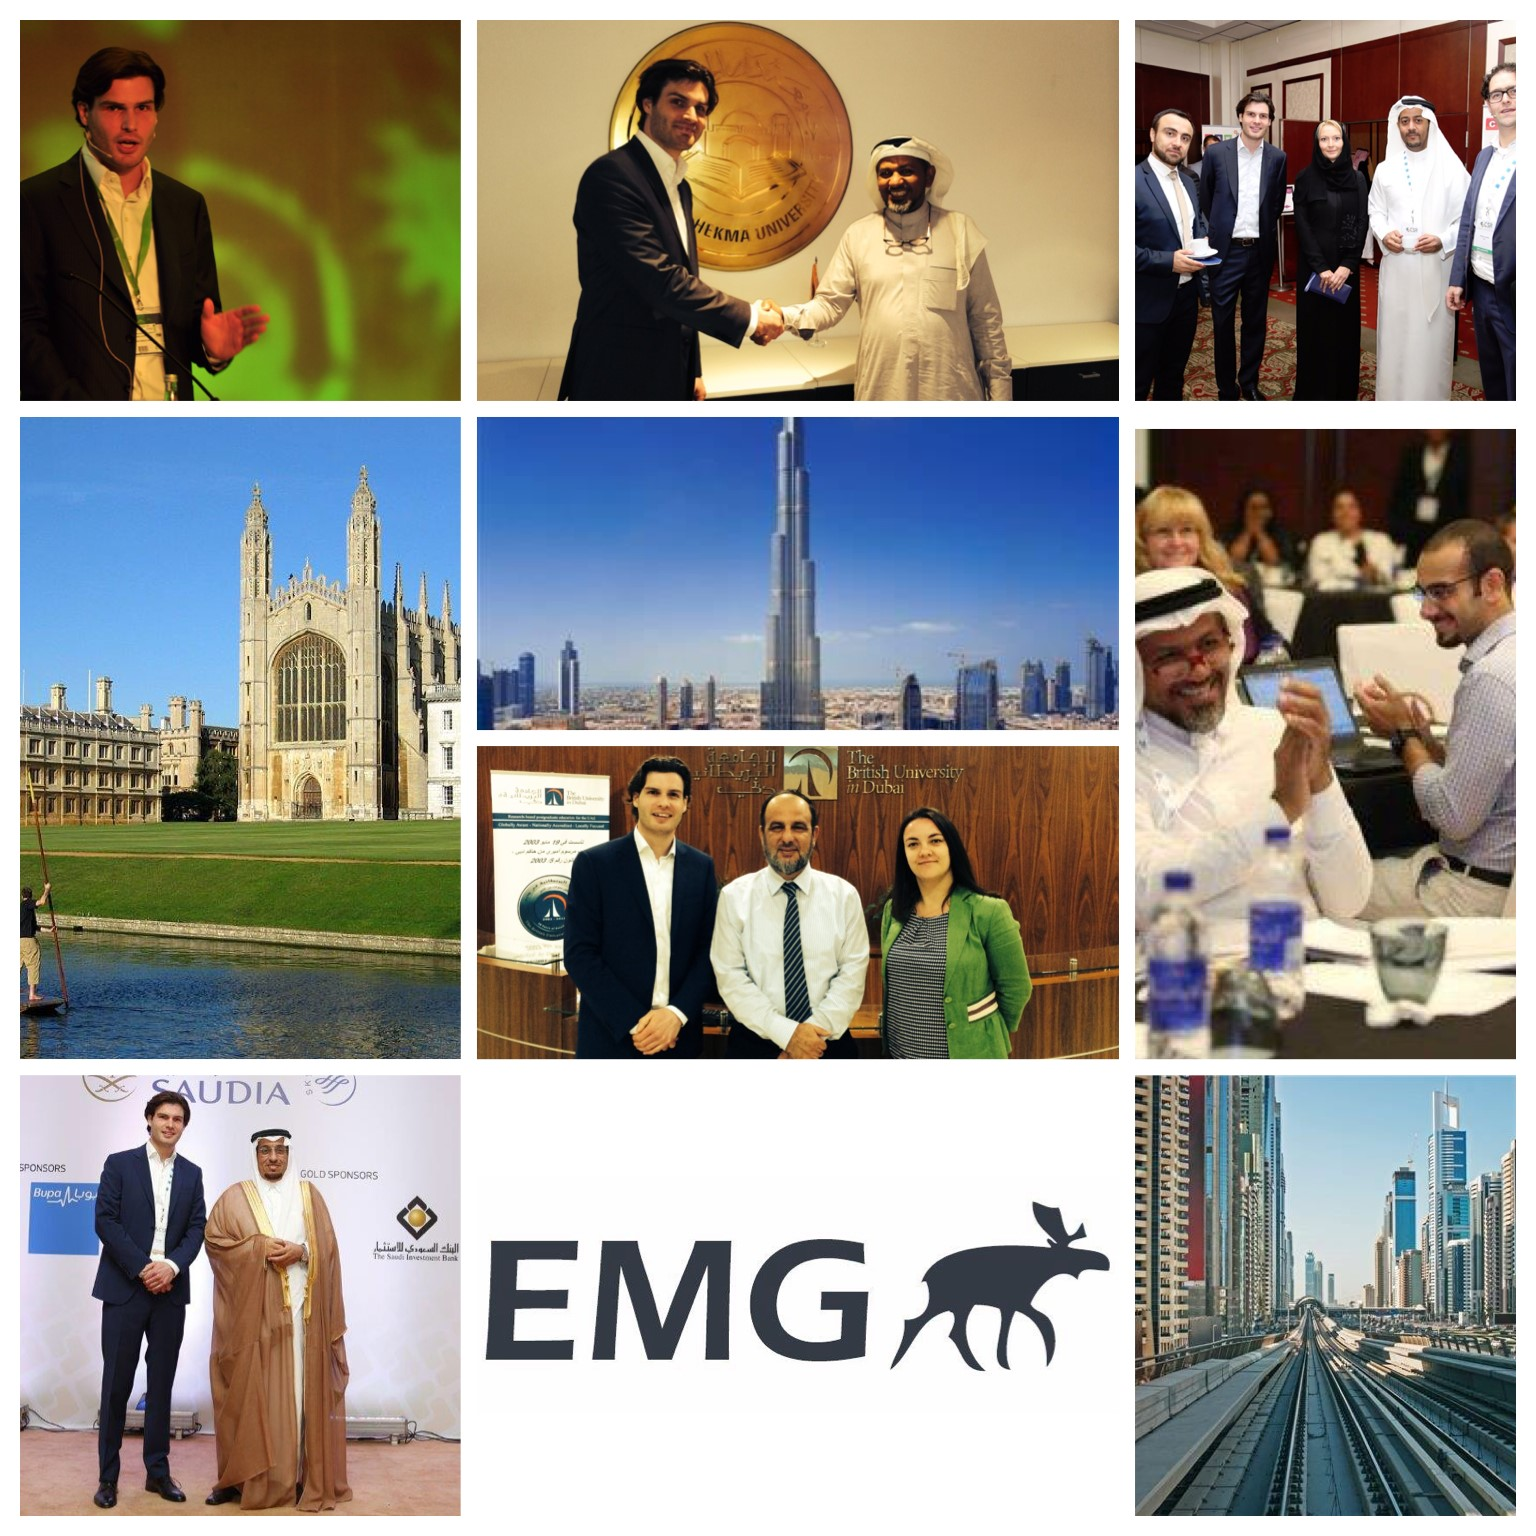 csr consulting jobs opening csr senior consultant arabic join emg network csr consulting jobs